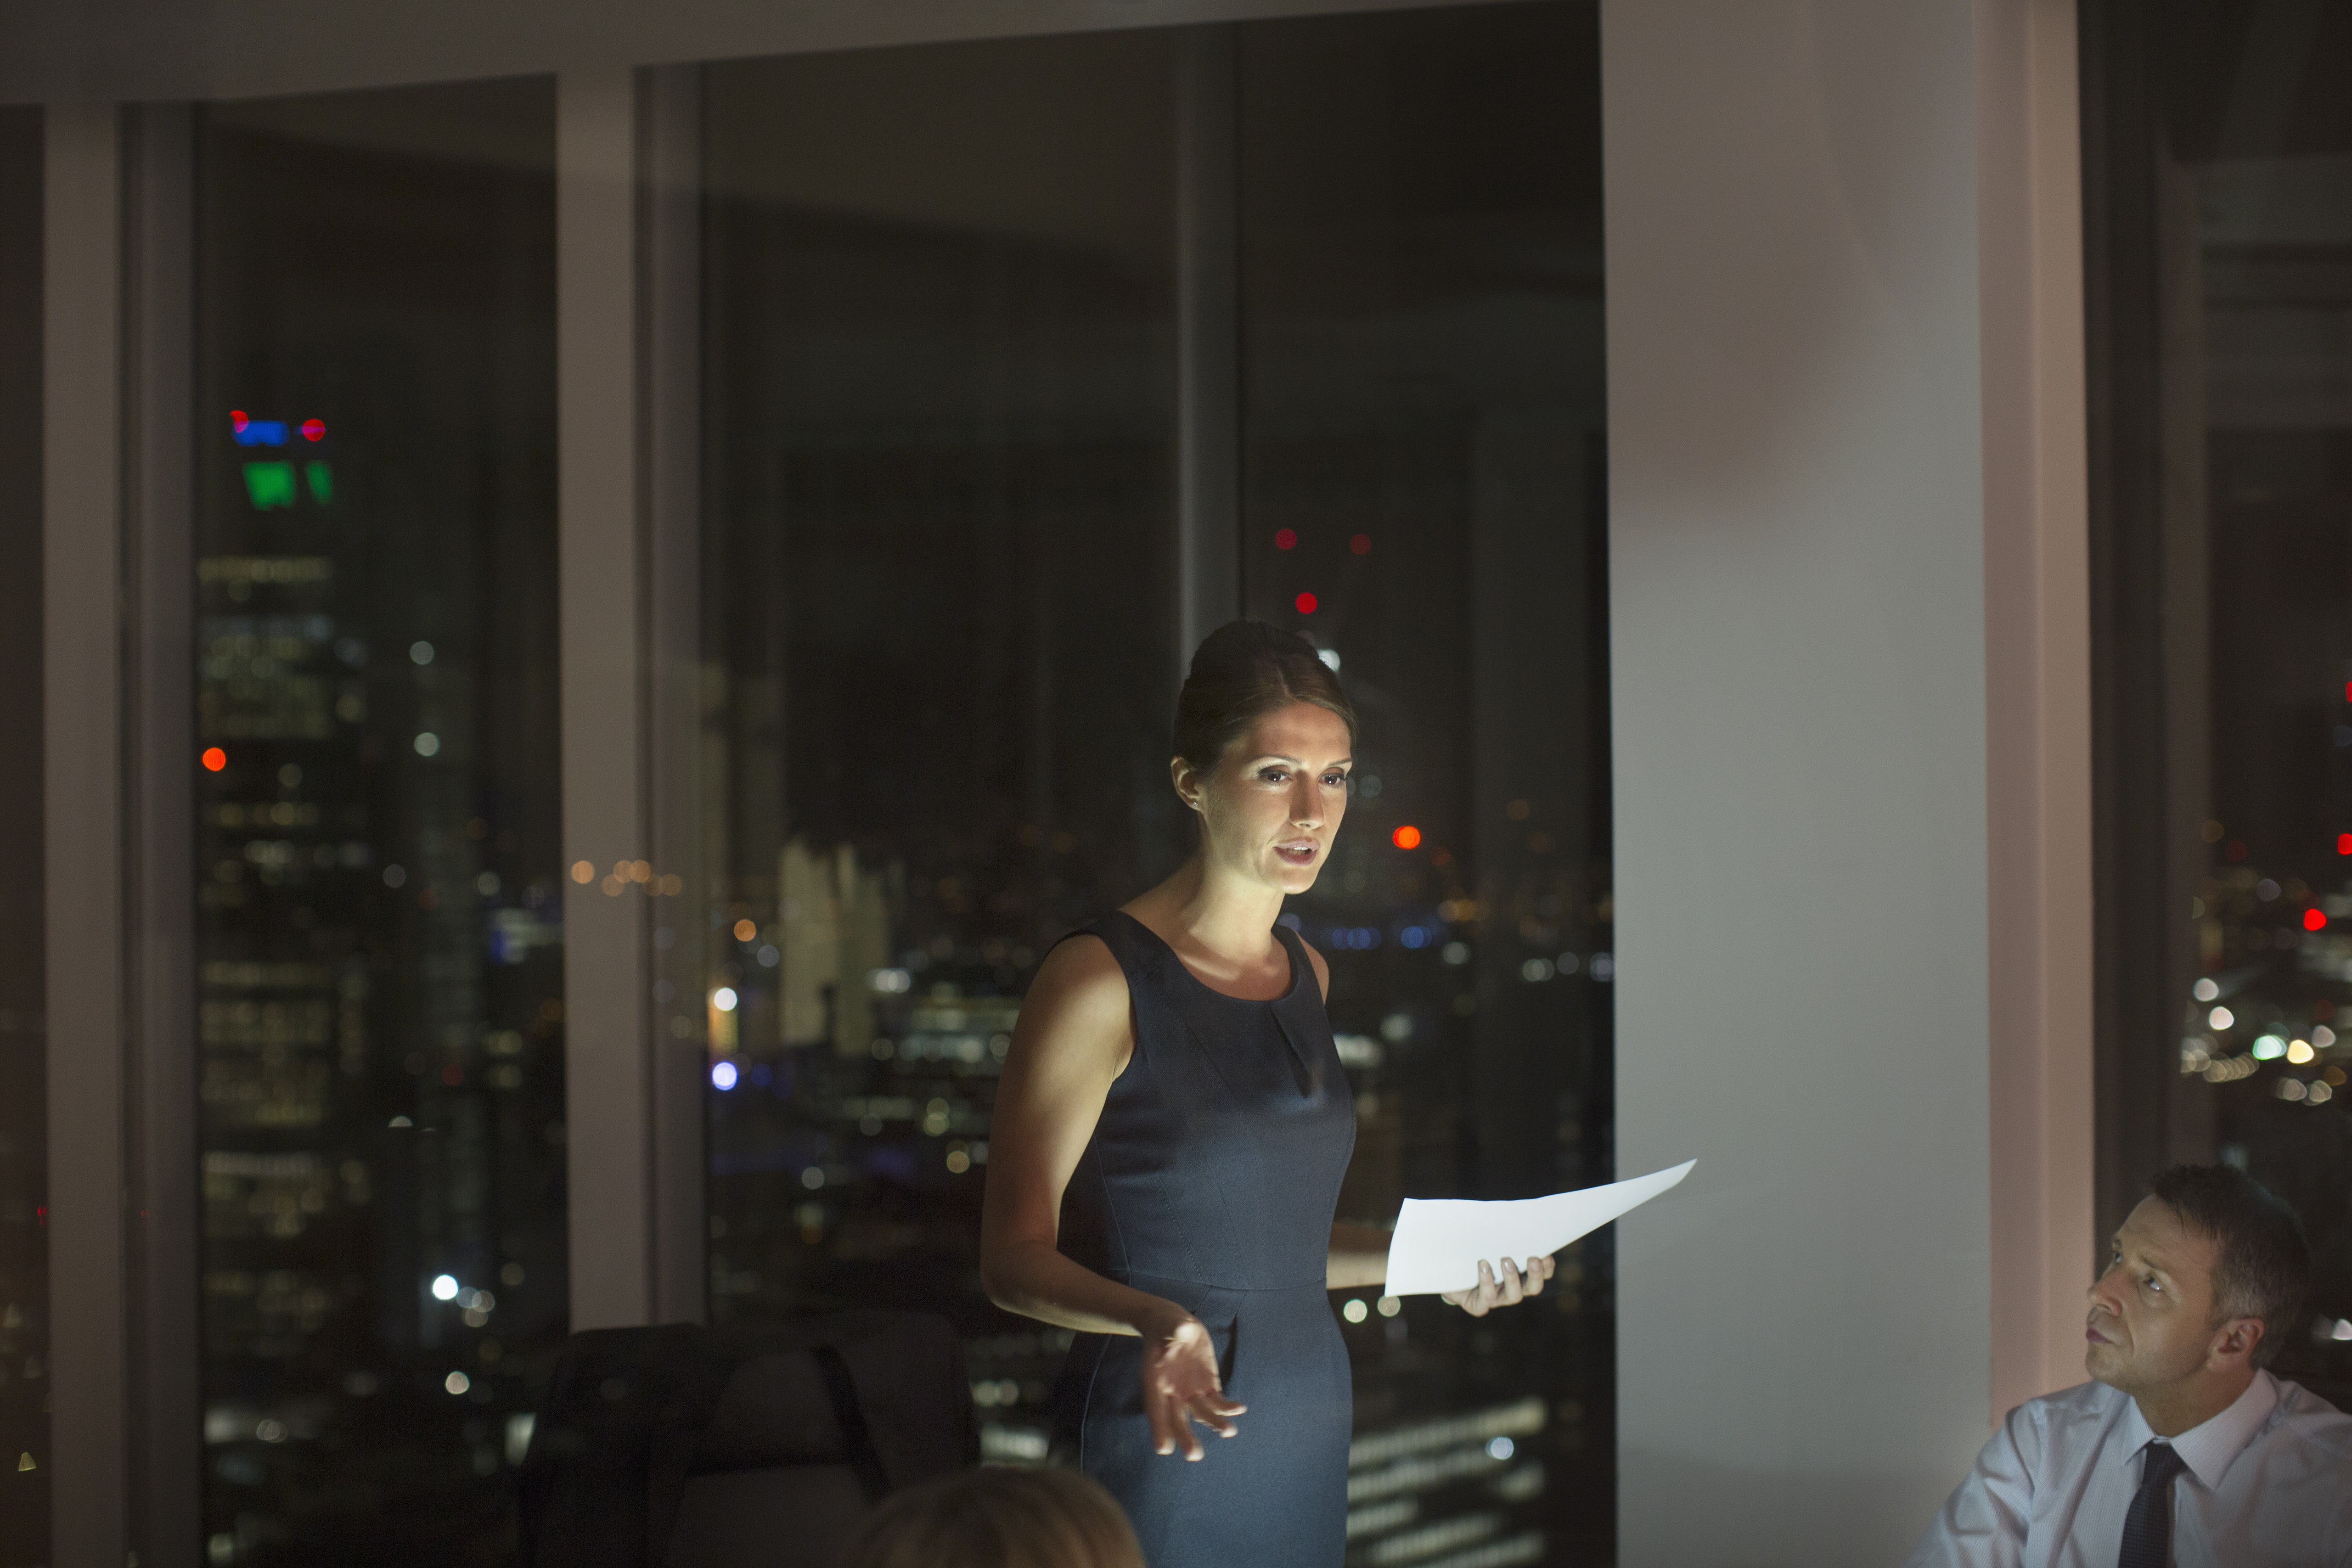 Businesswoman leading meeting in conference room at night